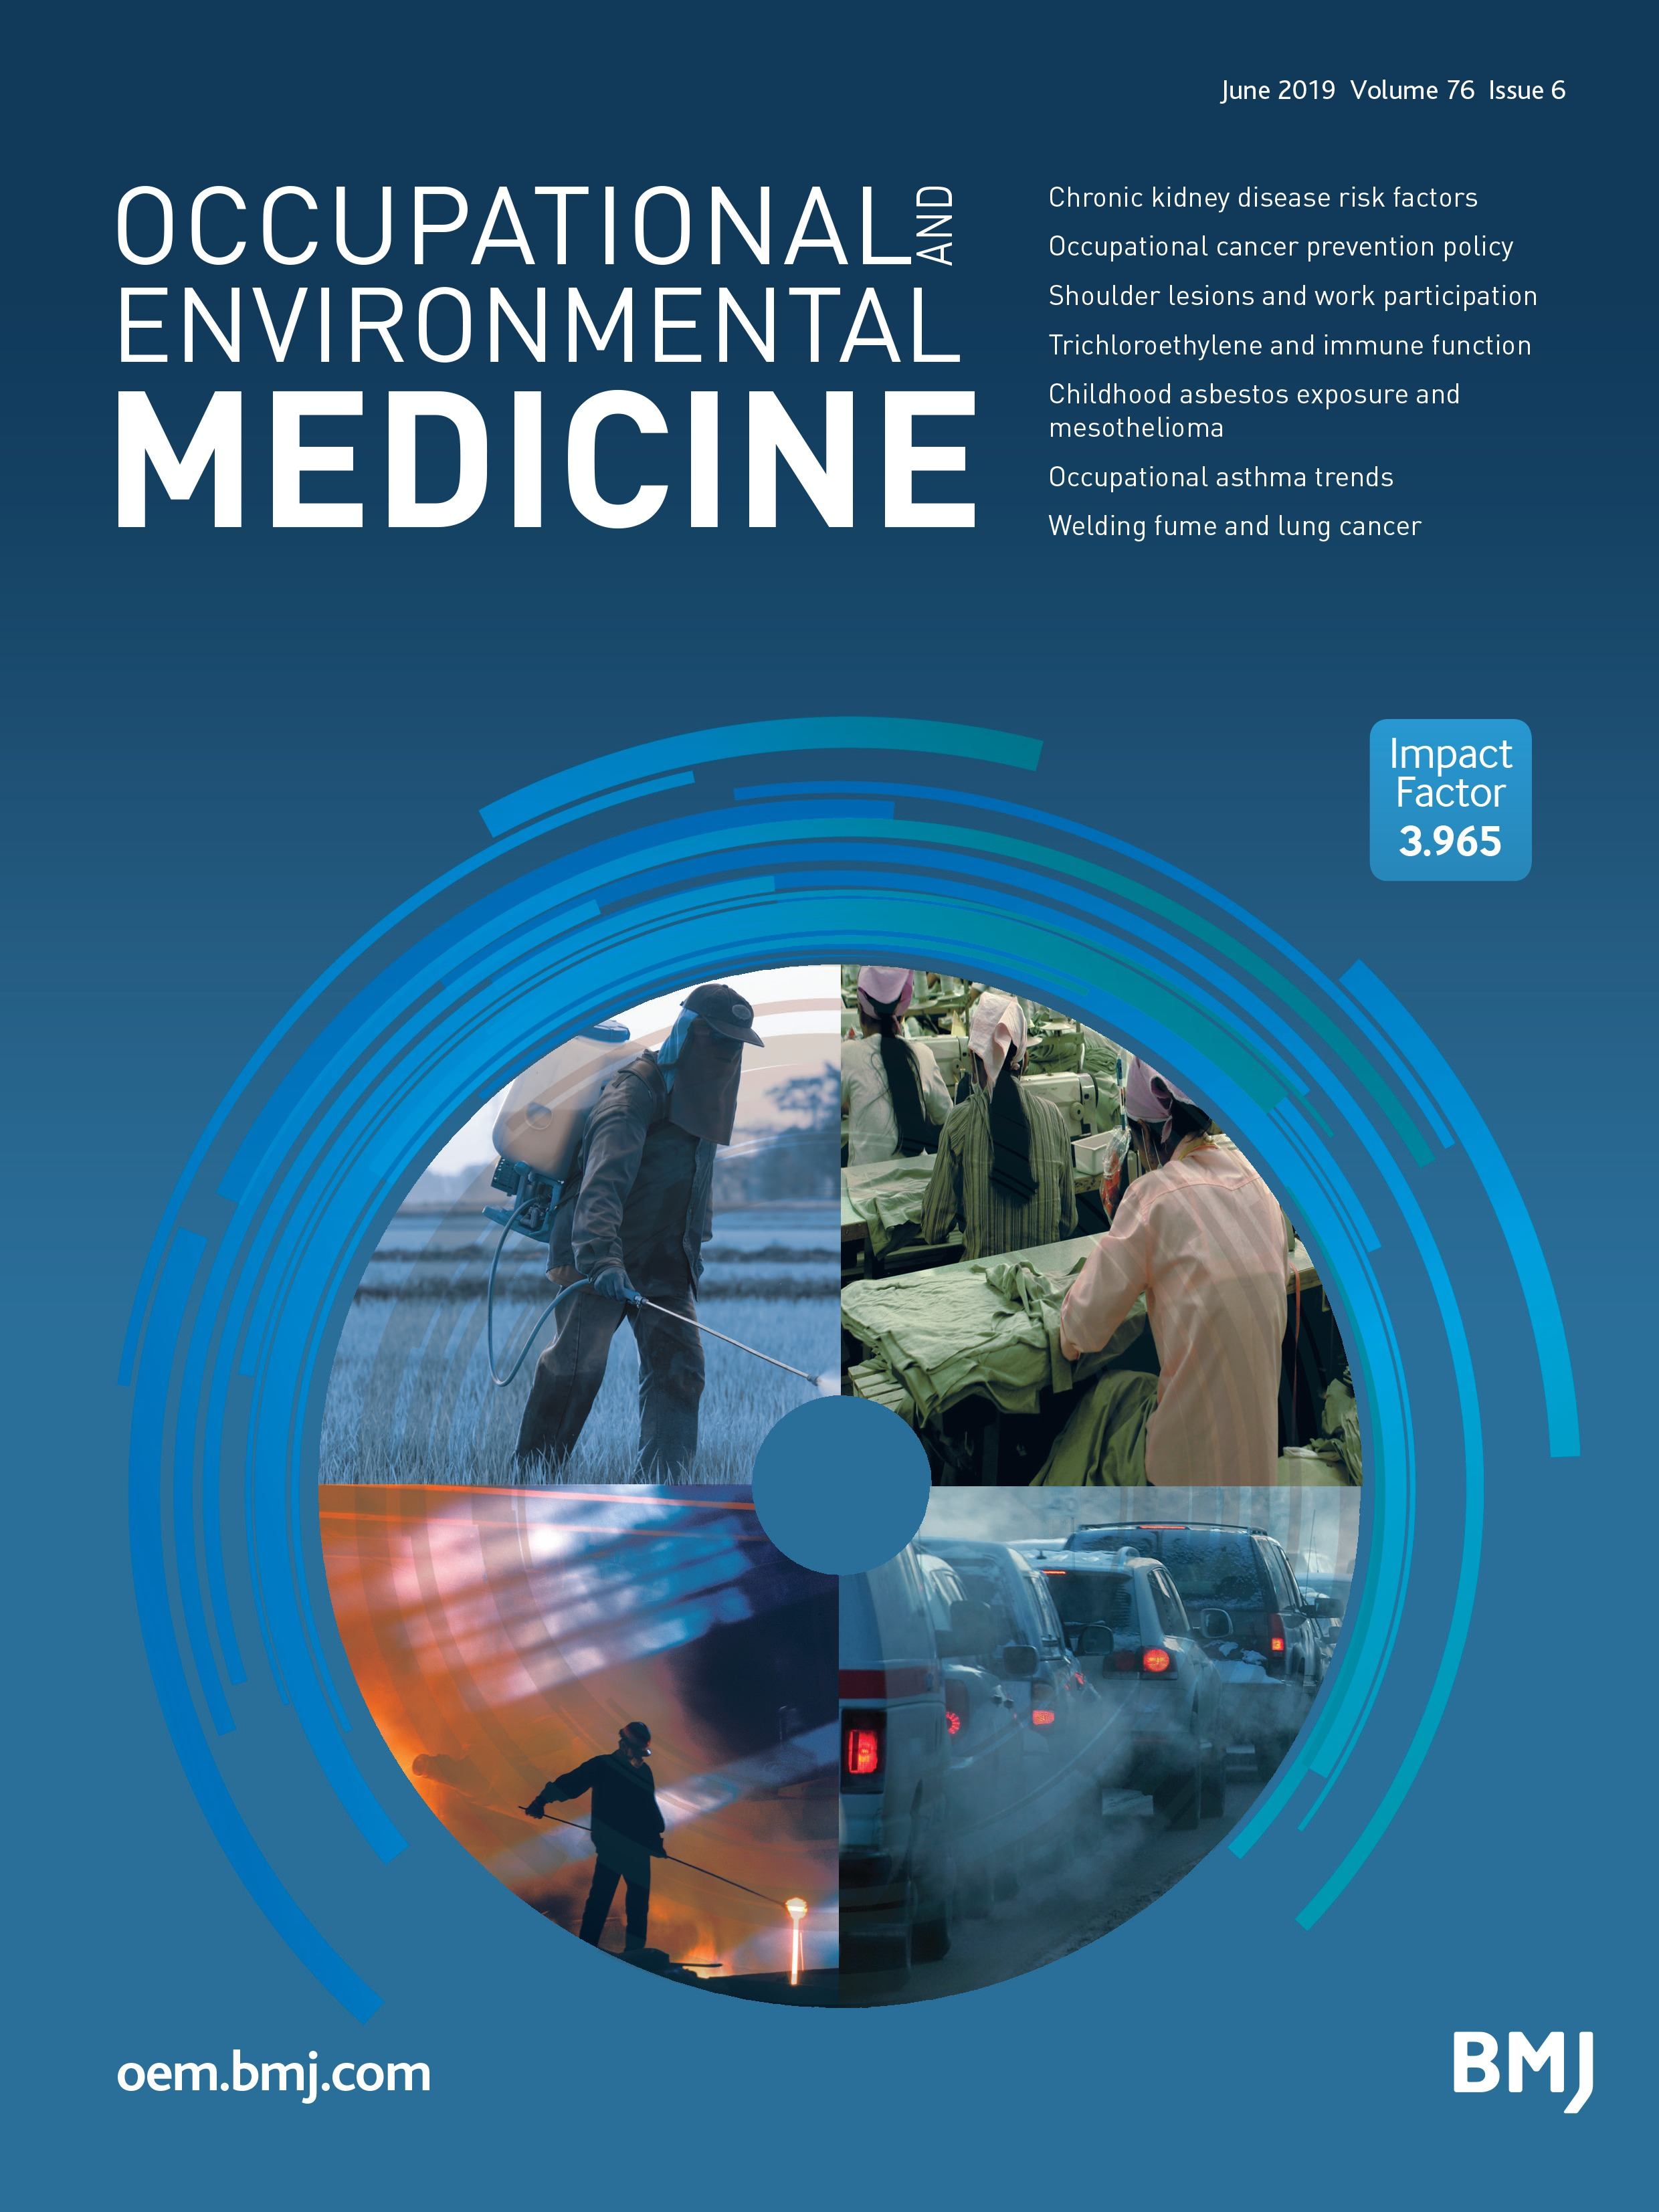 New avenues for prevention of occupational cancer: a global